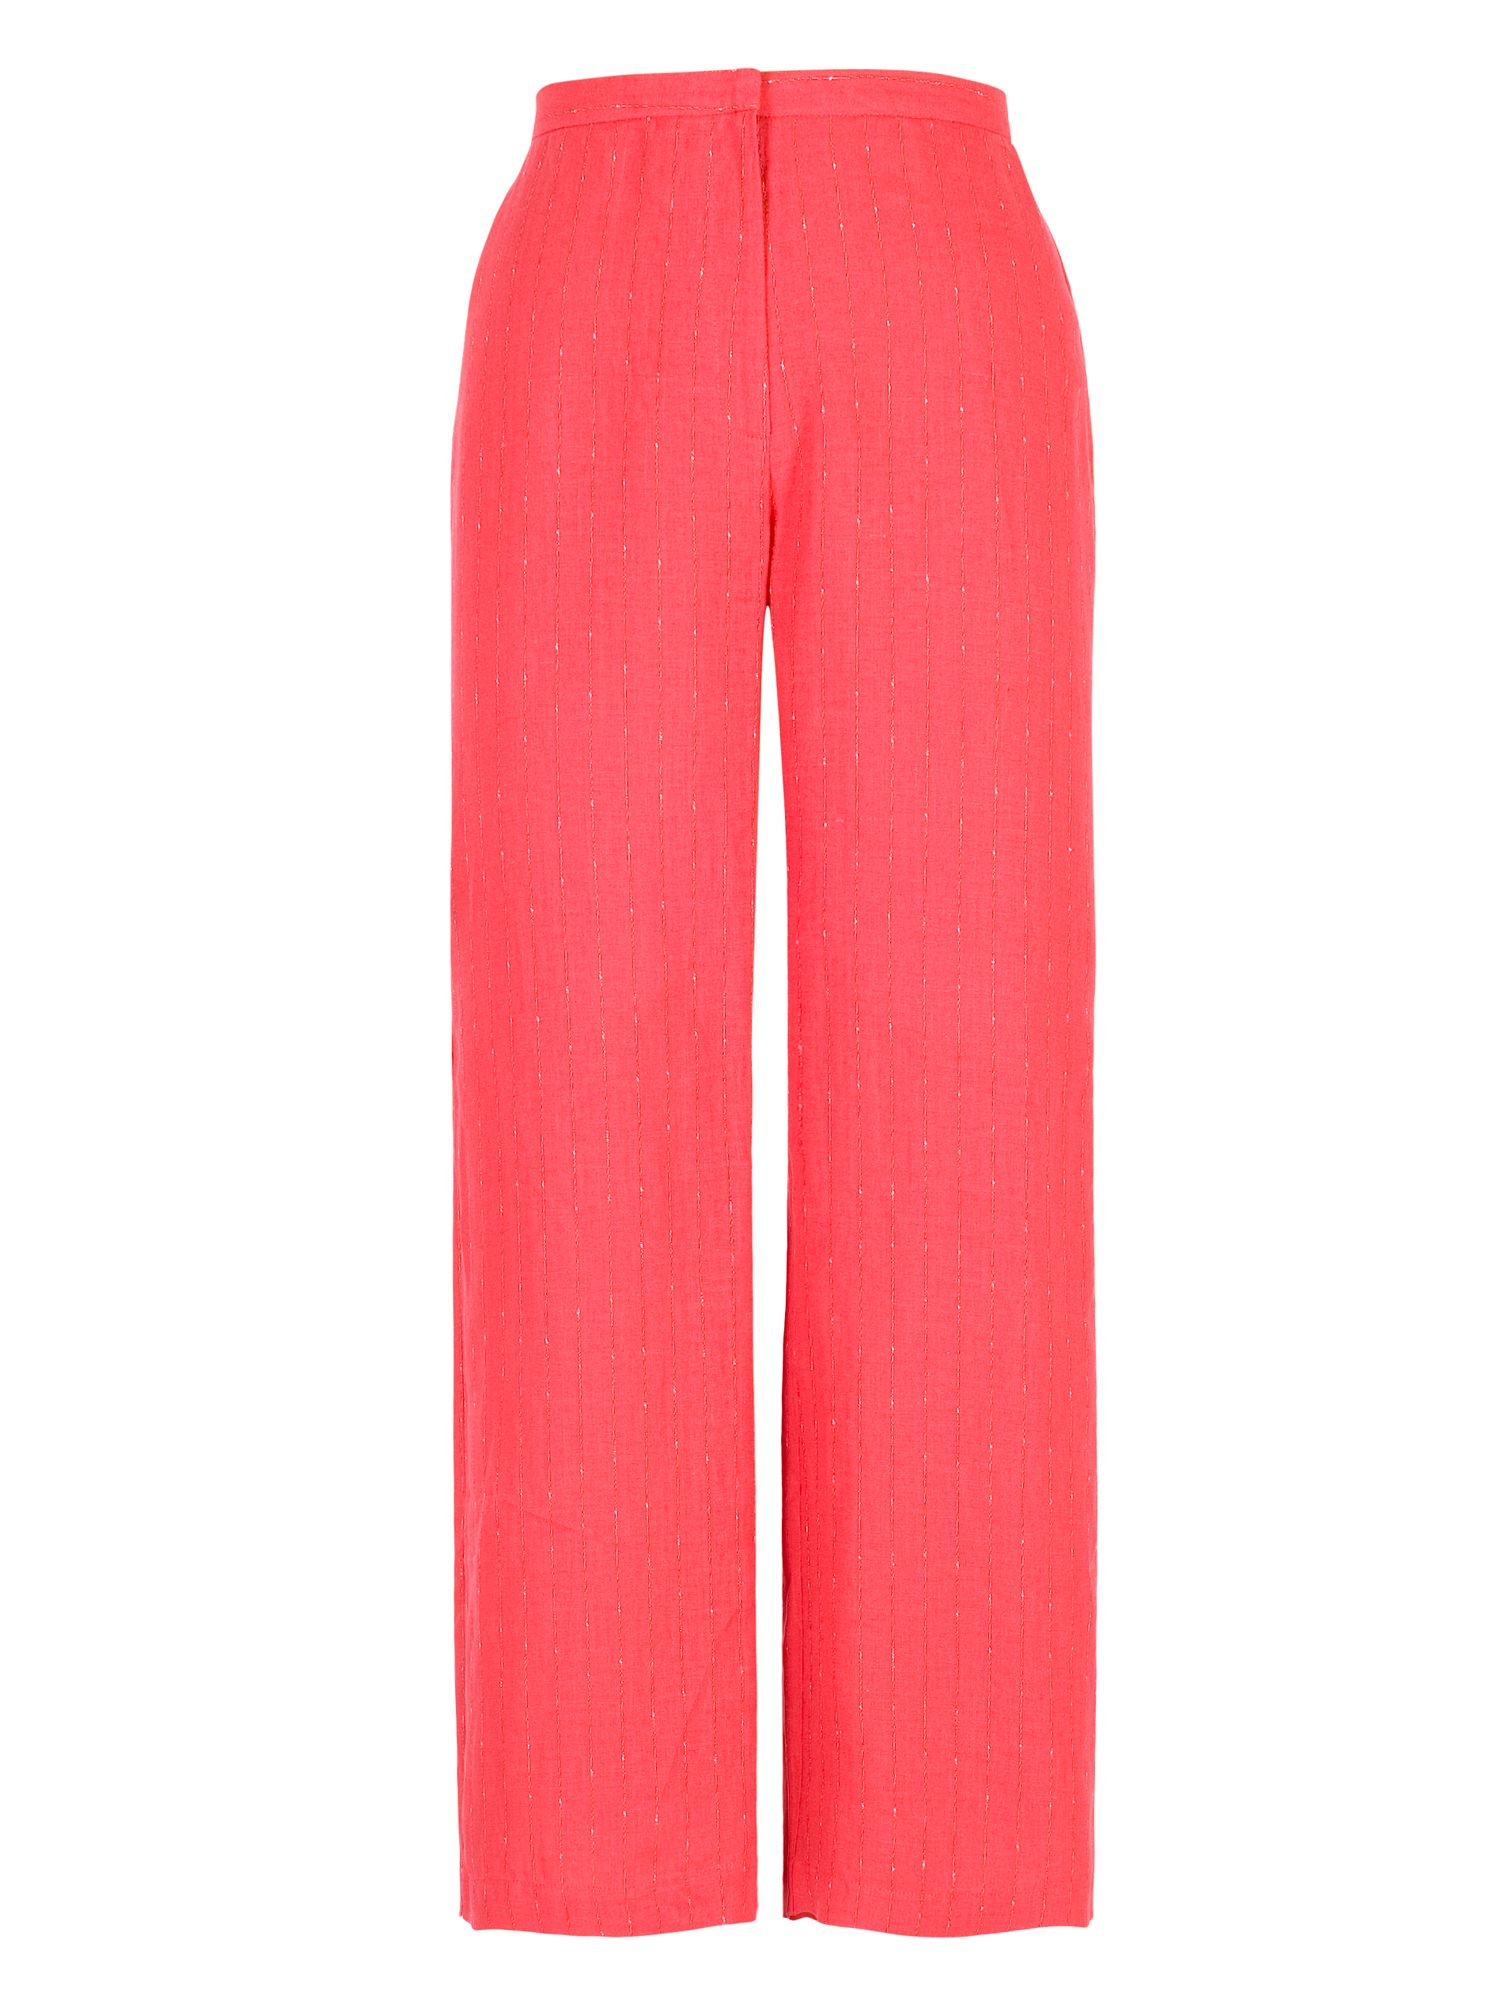 Chesca Pinstripe Linen Trouser, Red